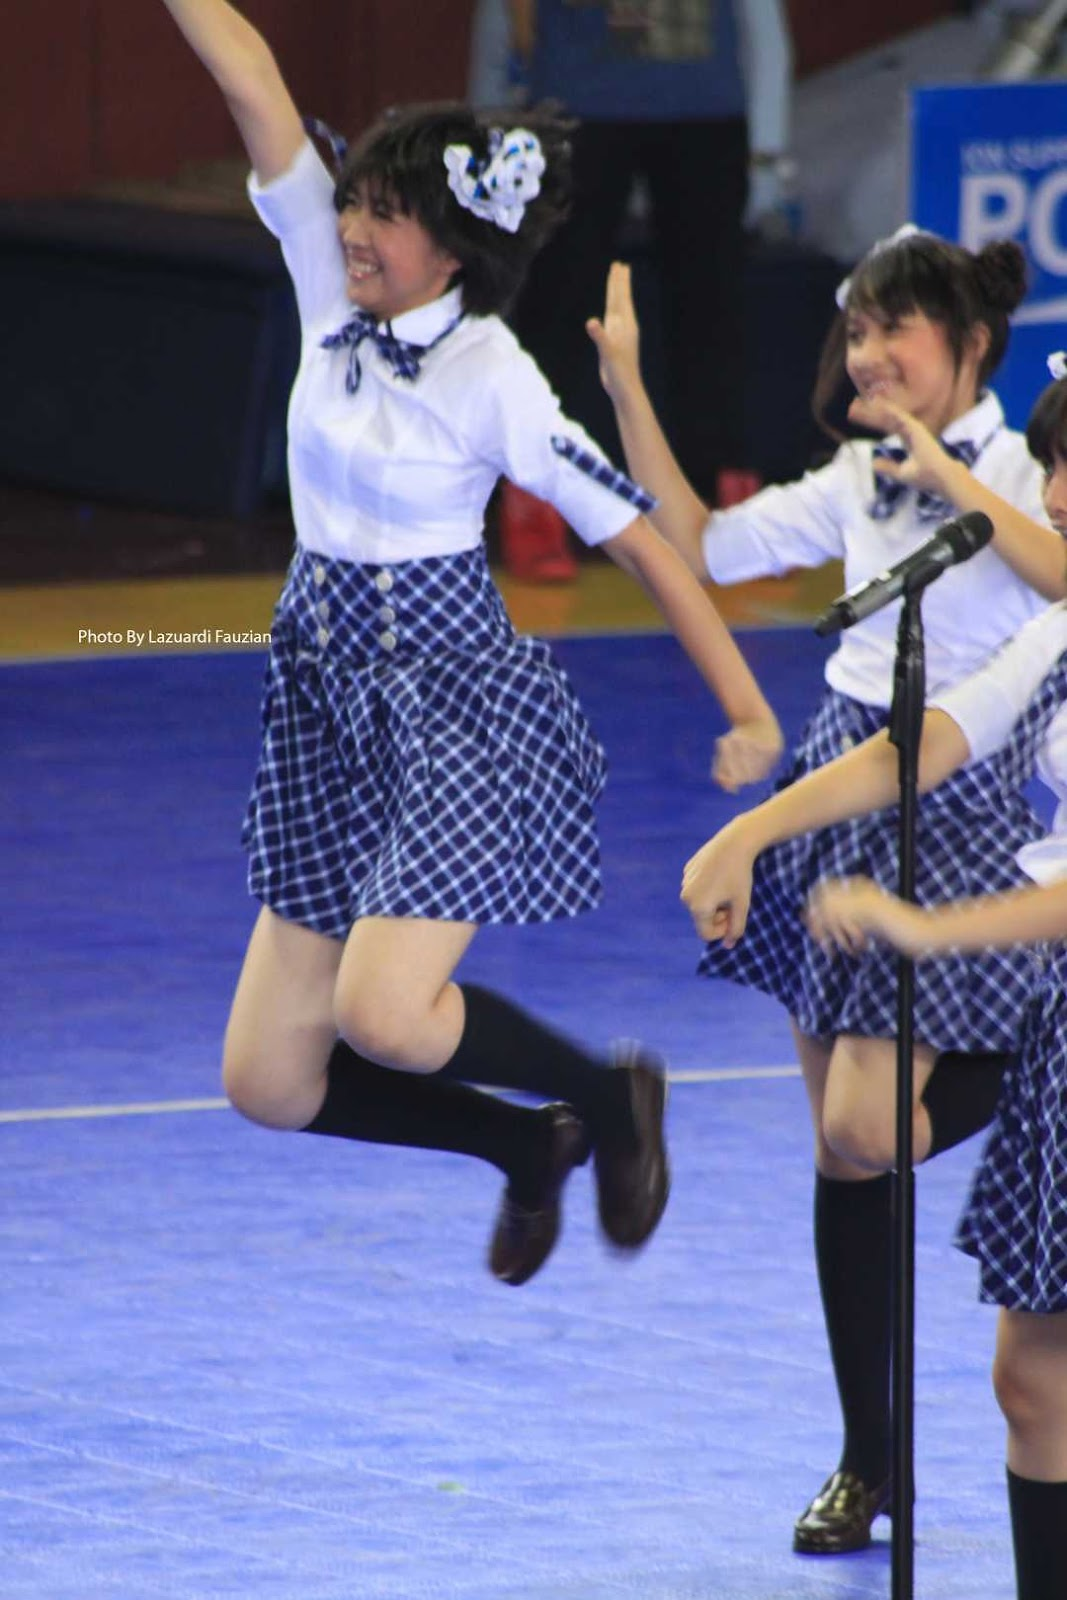 Ghadia JKT48 fly in the sky